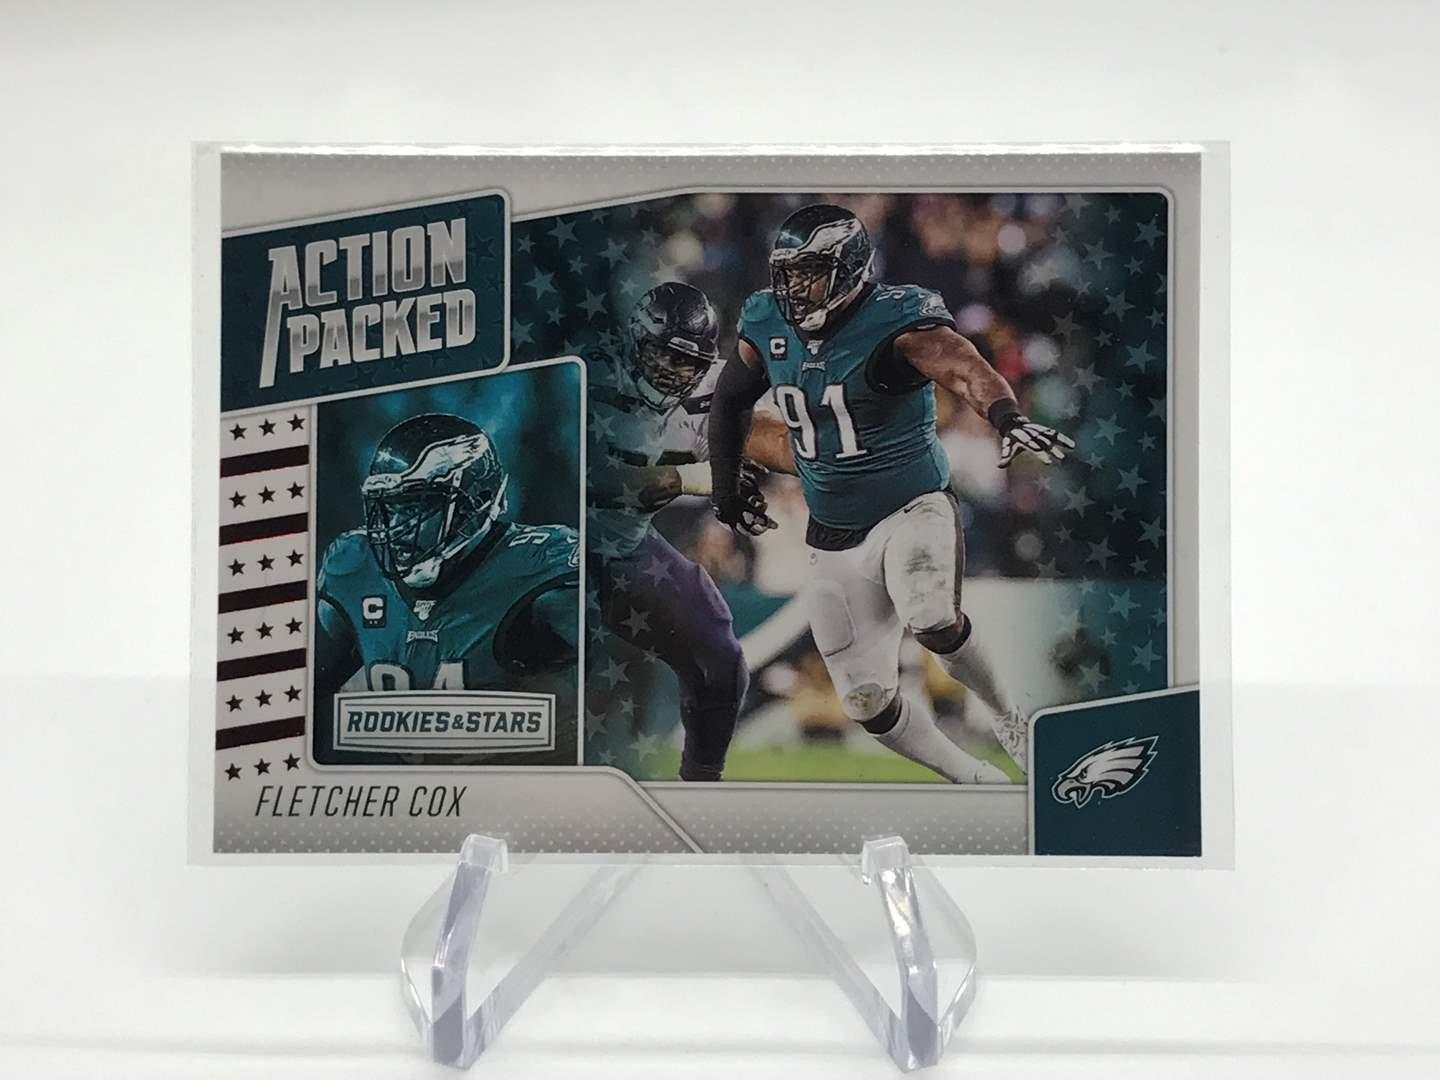 Lot # 265 2020 Rookies & Stars Action Packed FLETCHER COX (main image)